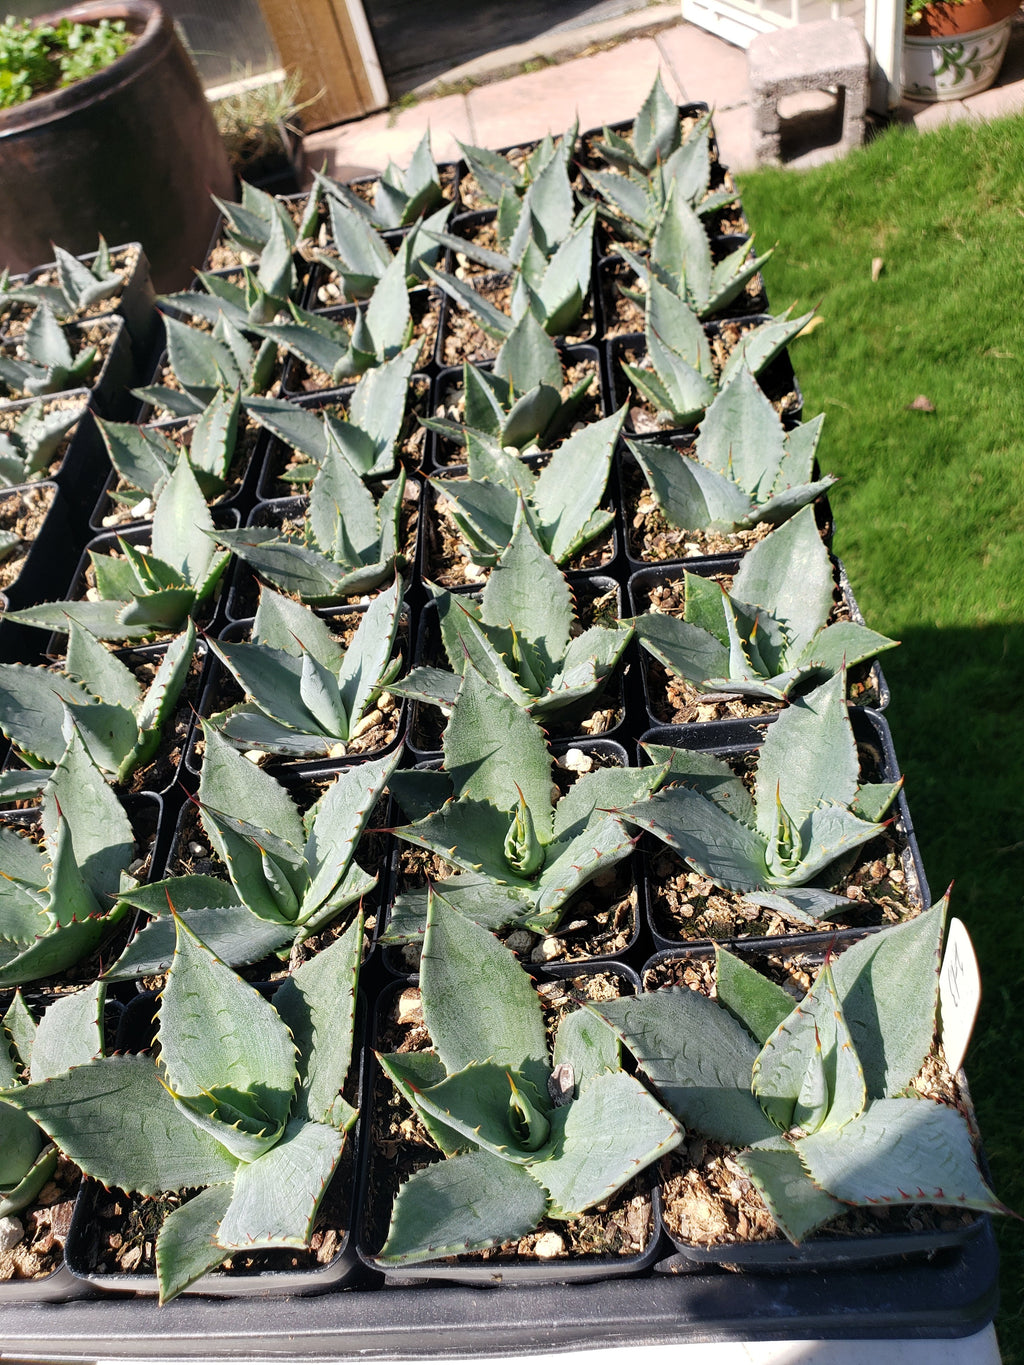 AG015:  Agave parryi v. neomexicana (Truth or Consequences, NM Form)